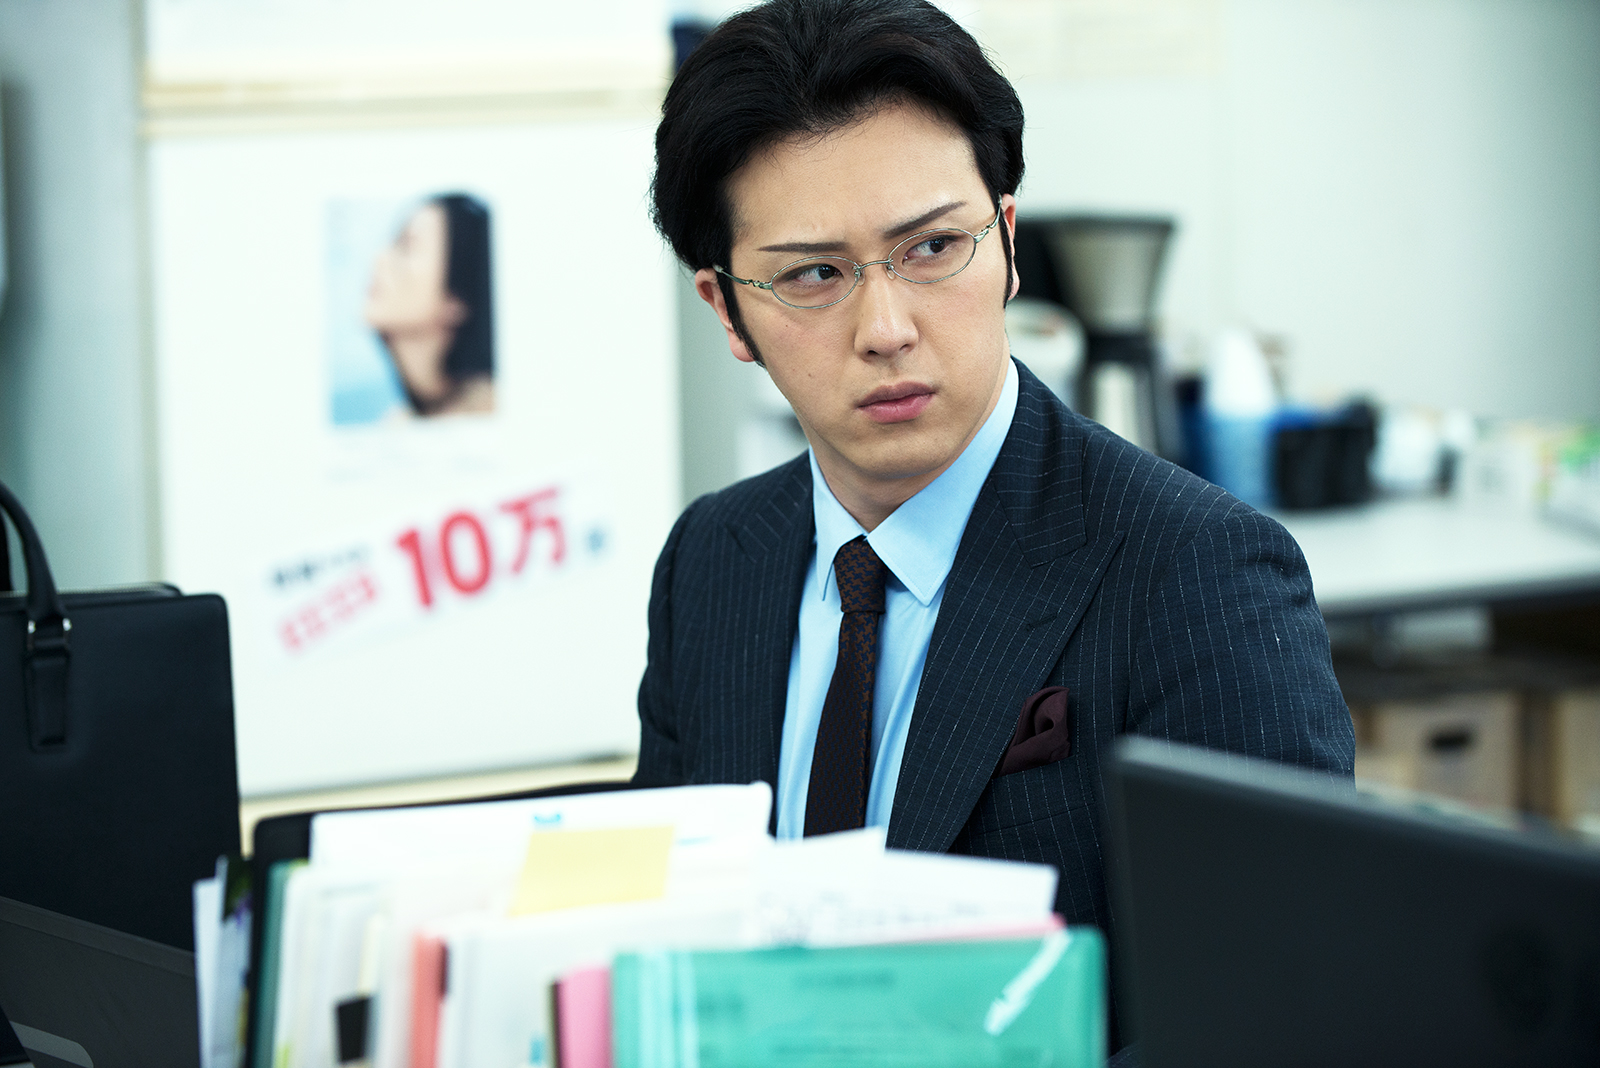 kantaro-sweet-tooth-salaryman-netflix-office-blogpost.jpg